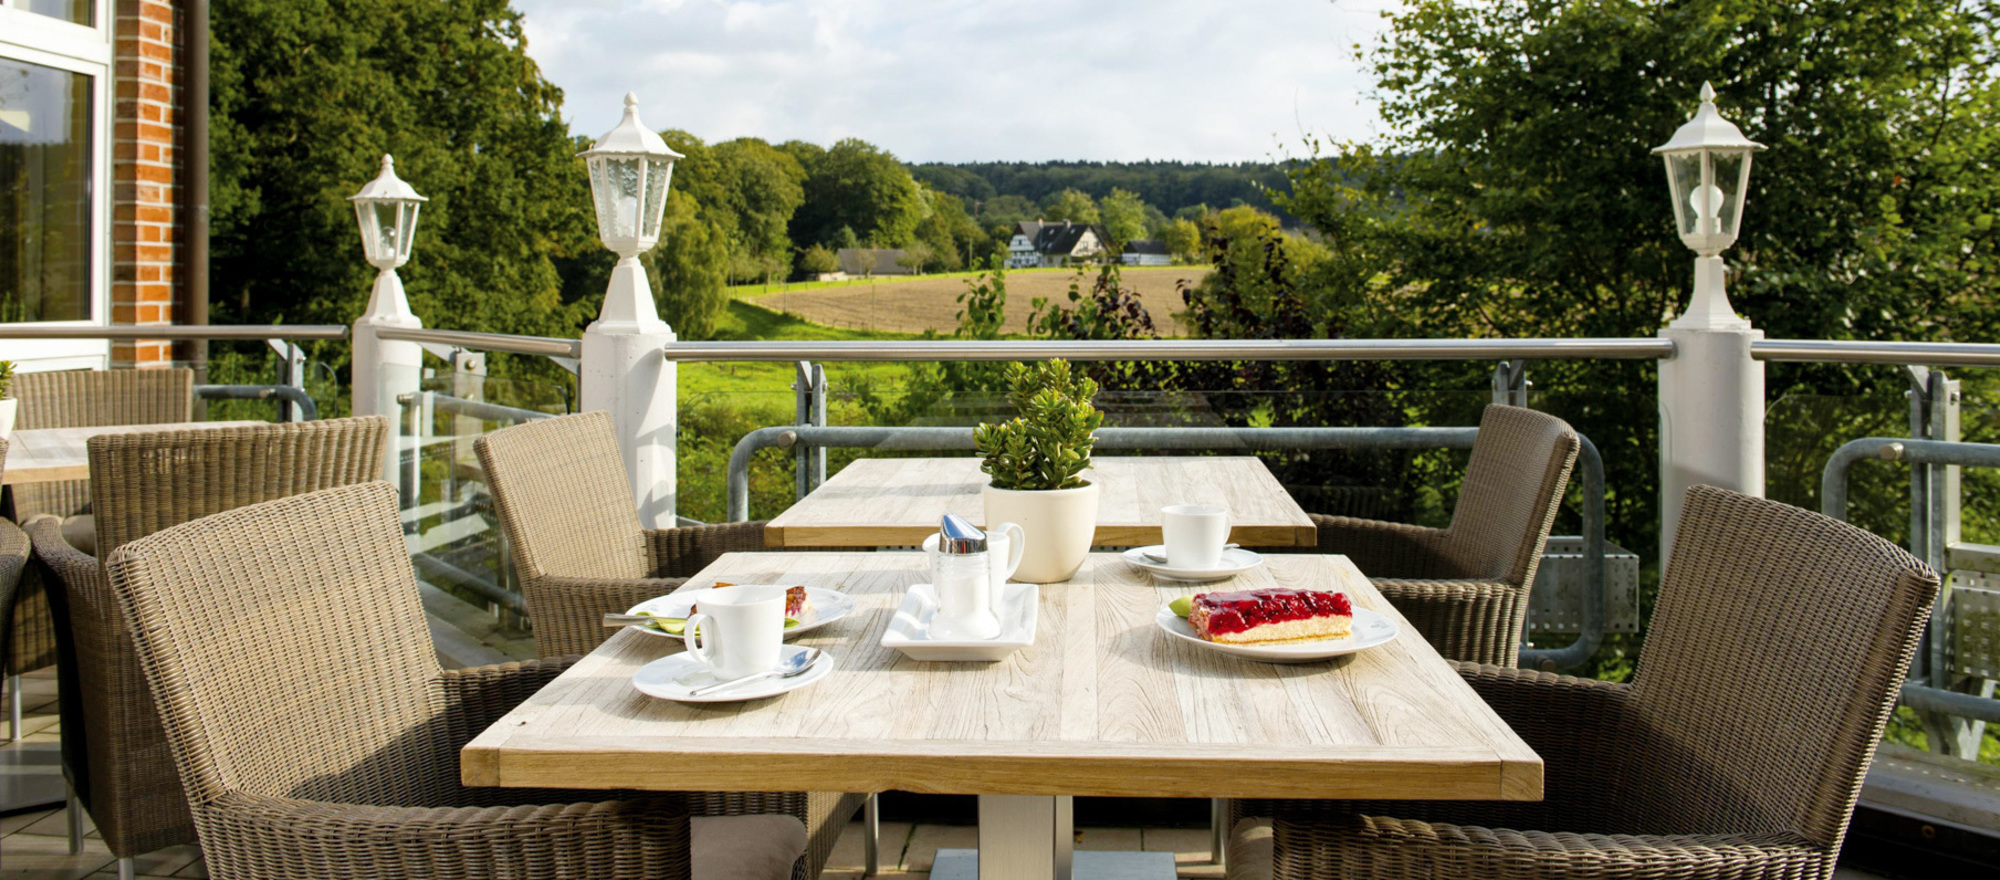 Breakfast at the terrace at the Ringhotel Landhotel Buller, 4-stars hotel in Hagen am Teutoburger Wald